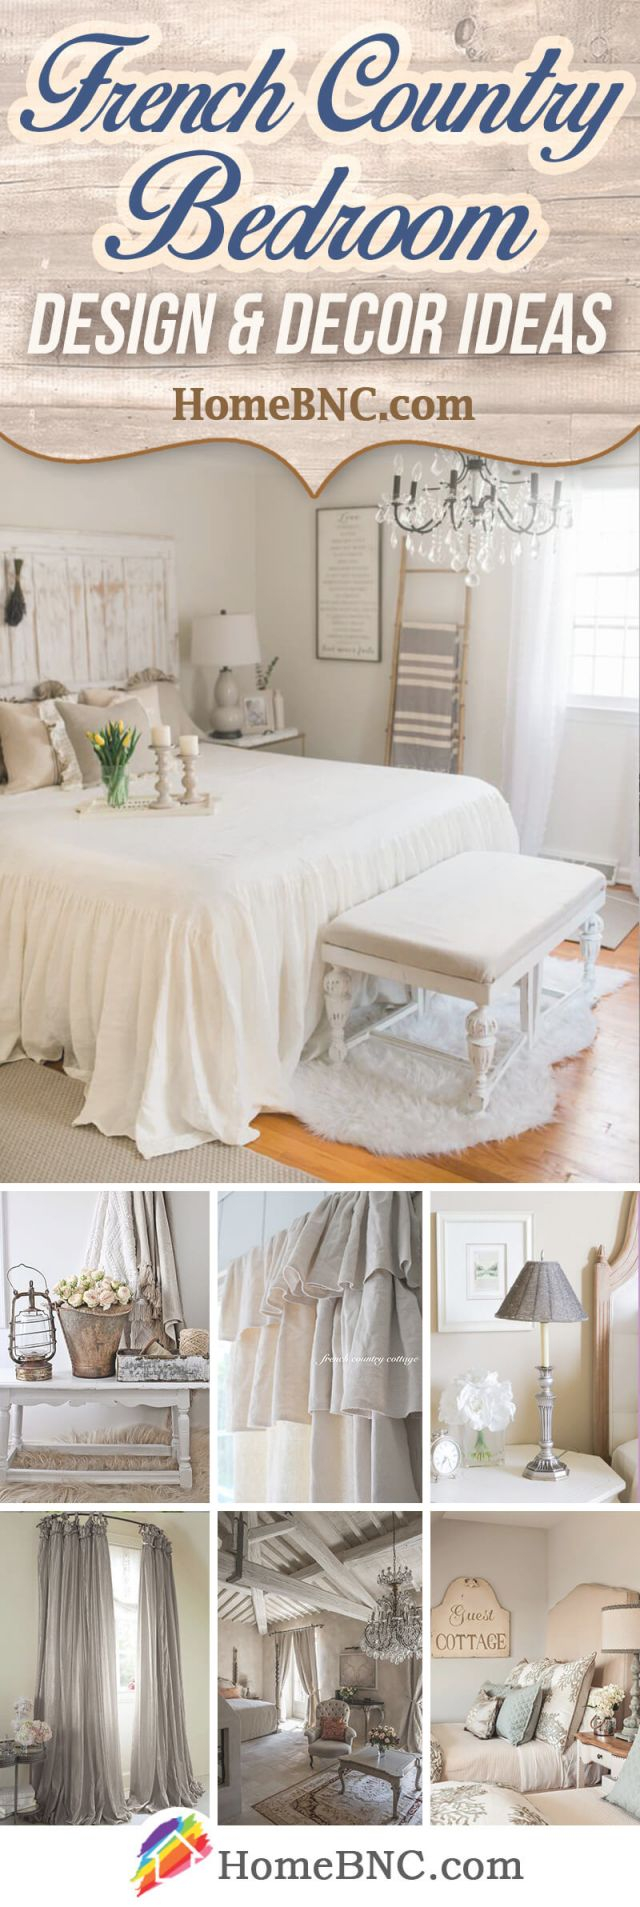 30 Best French Country Bedroom Decor And Design Ideas For 2020 Inside Relaxing Master Bedroom Decorating Ideas Awesome Decors